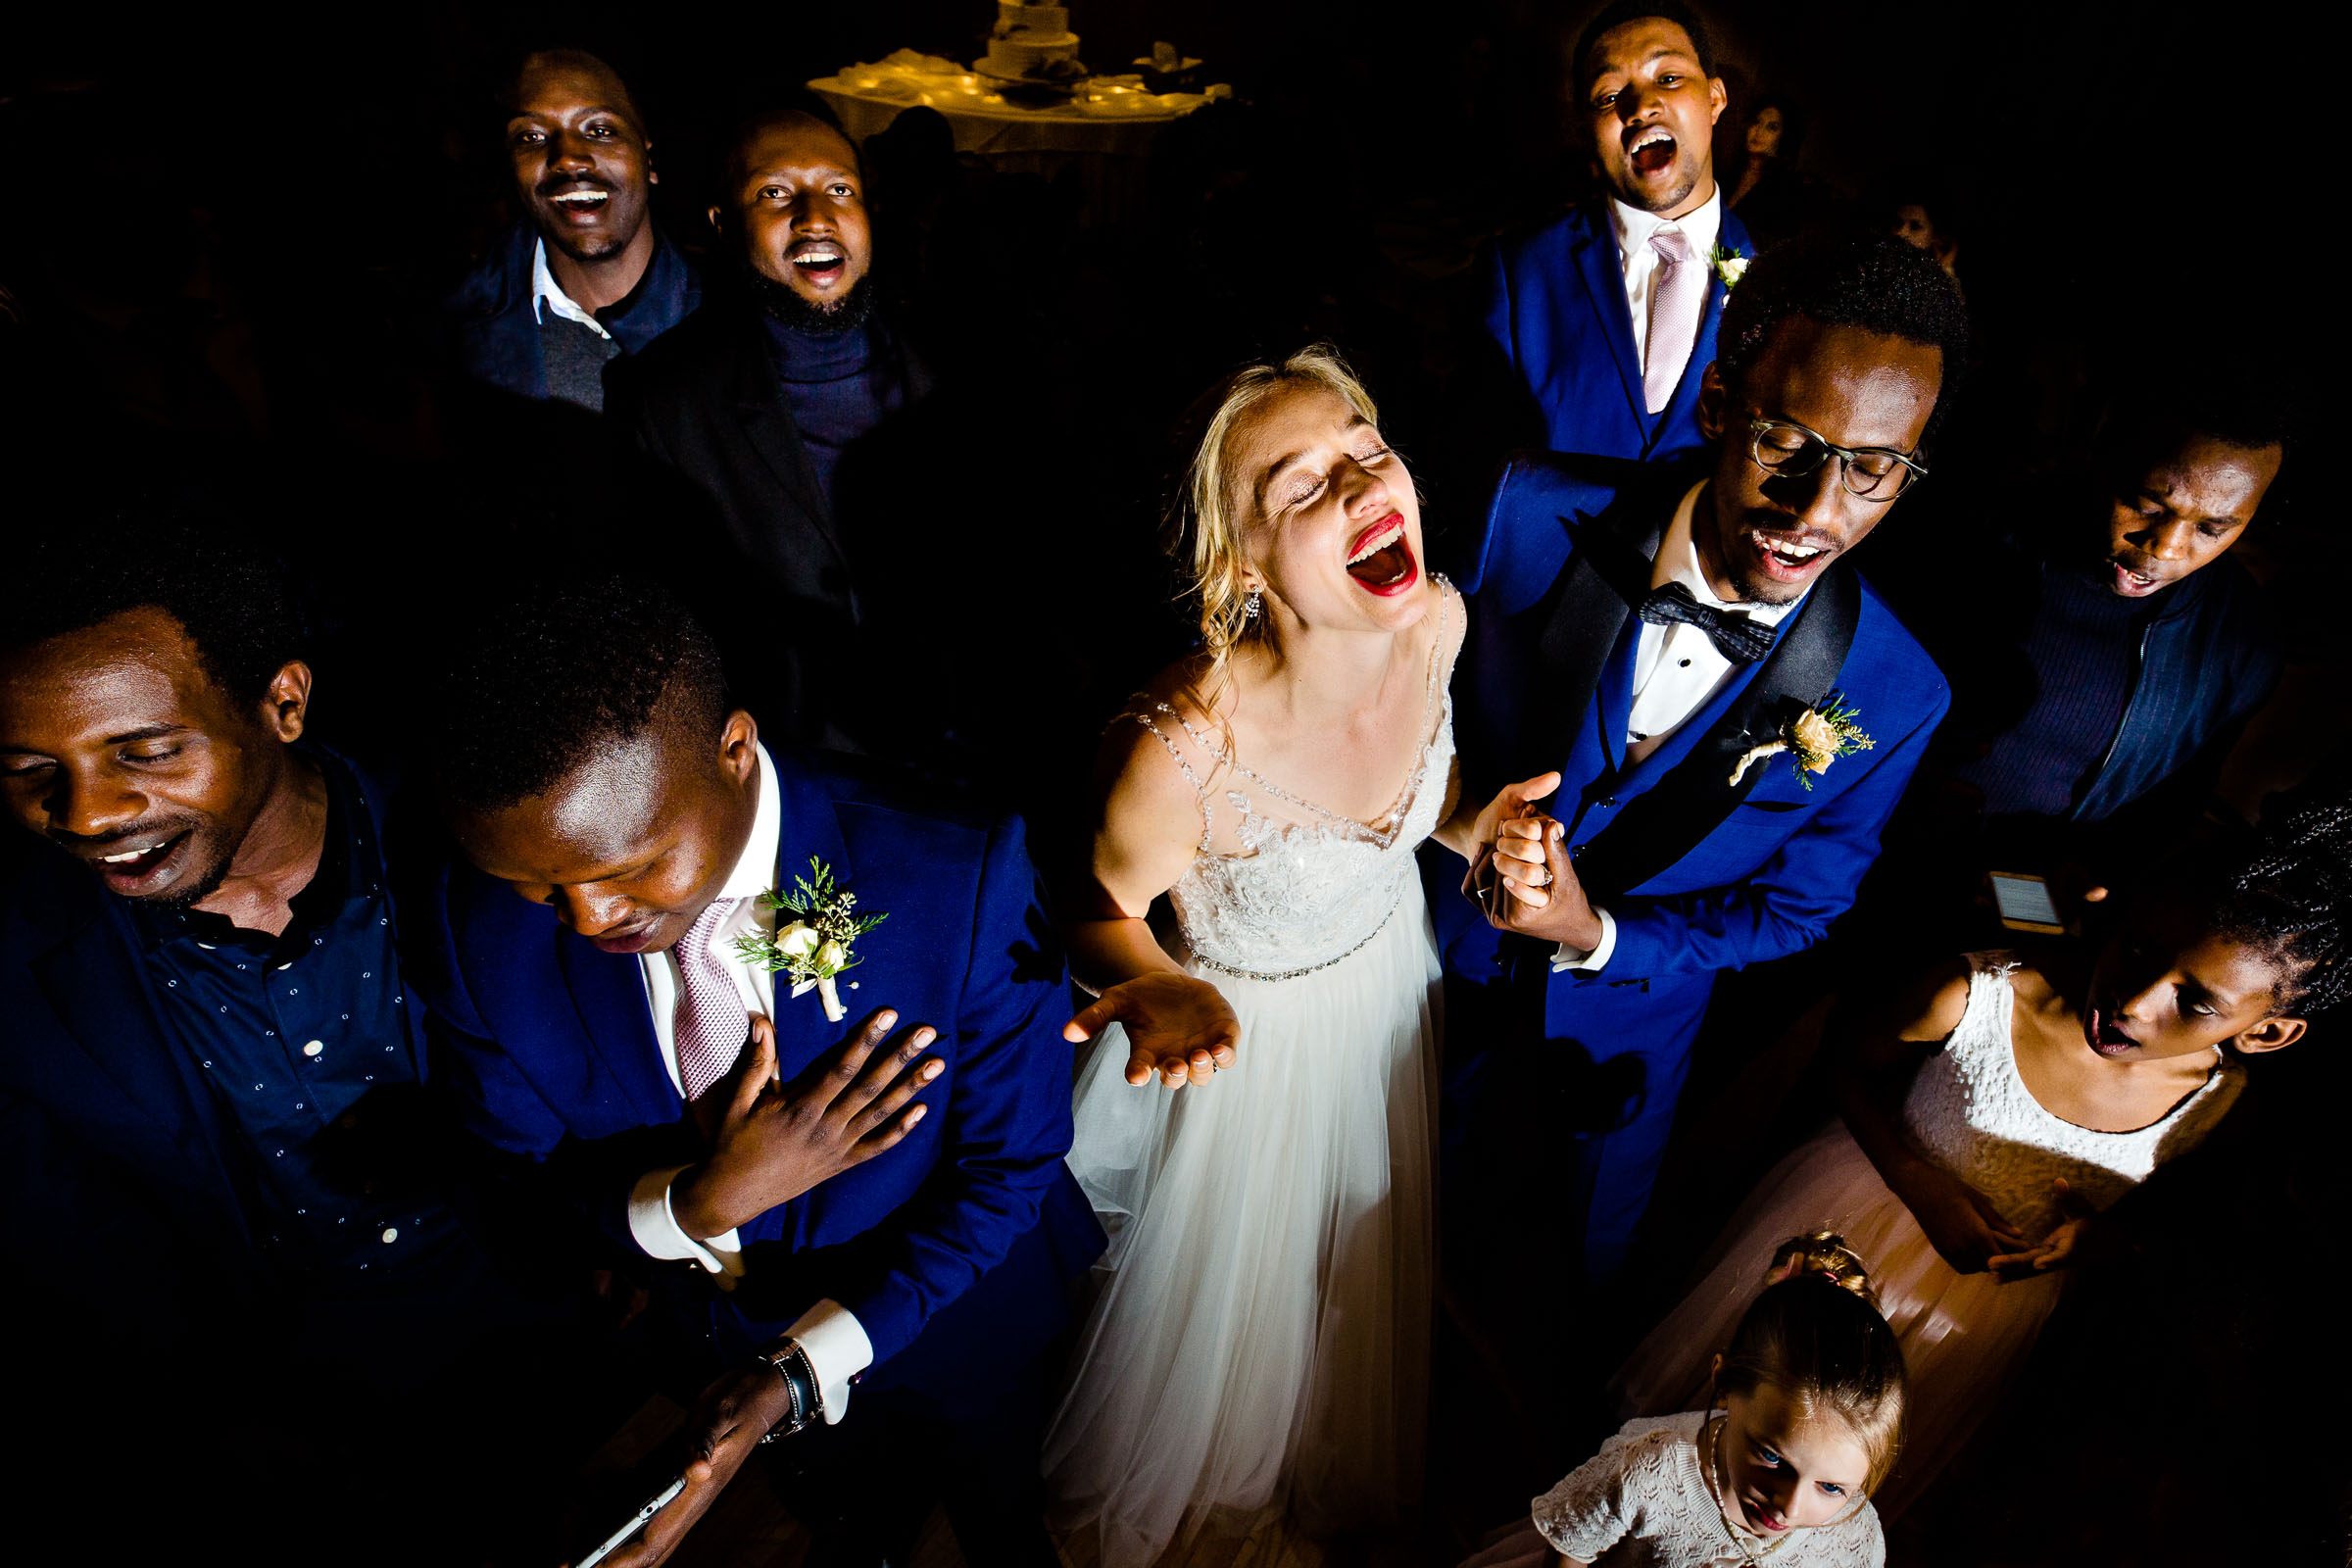 Over the top photo of bride and groom and groomsmen singing together on the dance floor at a Timberline Lodge Wedding